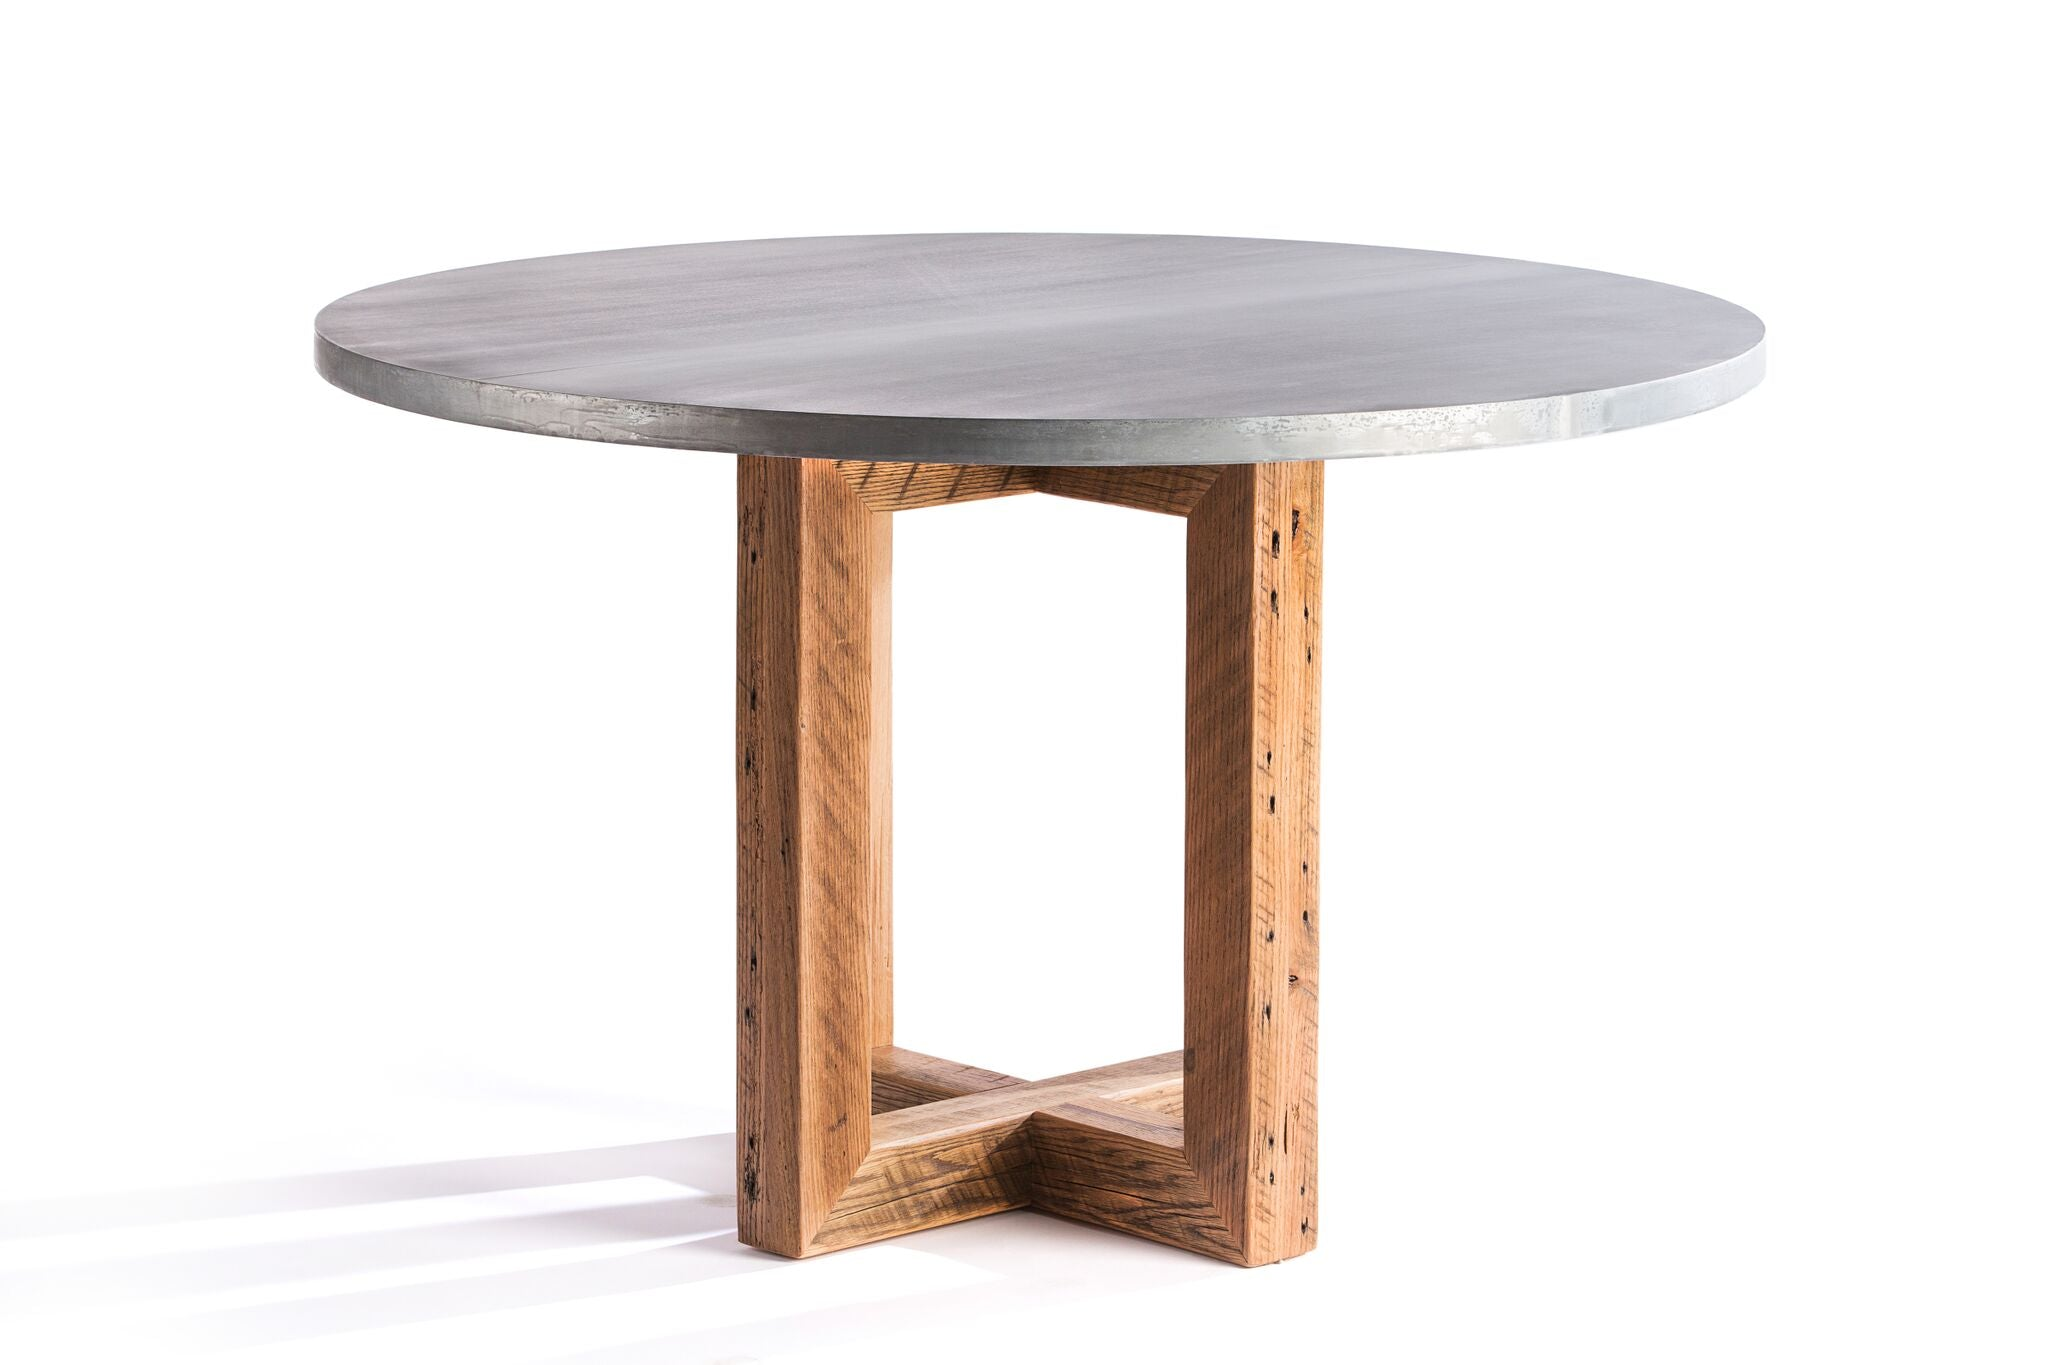 "Zinc Round Tables | Winston Table | CLASSIC | Driftwood Grey | CUSTOM SIZE D 54 H 30 | 1.5"" Standard 